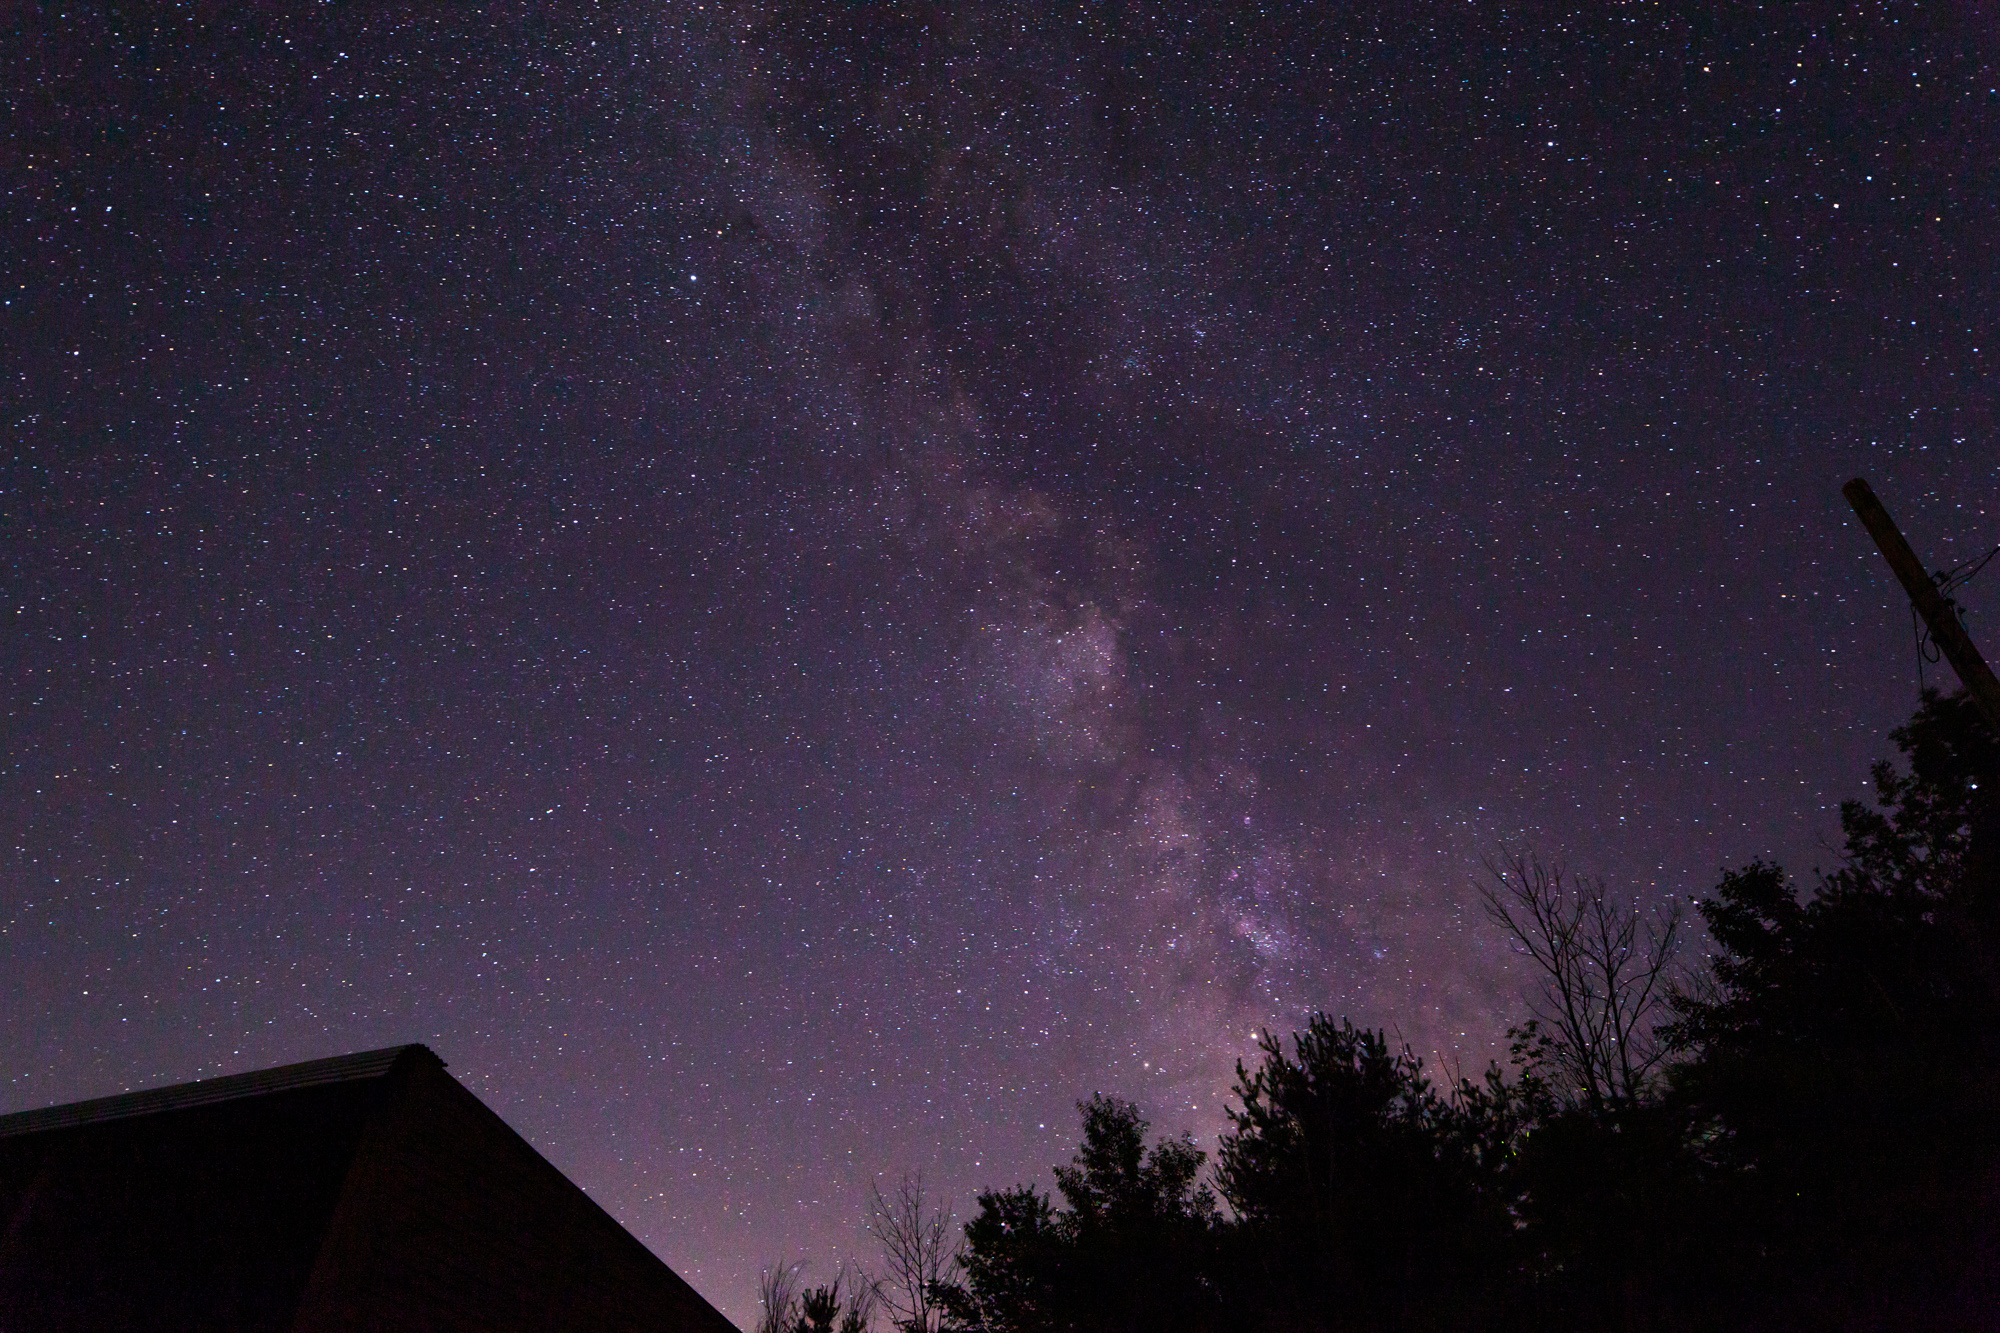 N. Adriana Knouf's Telescope Image of the Night Sky Above the Wave Farm Study Center